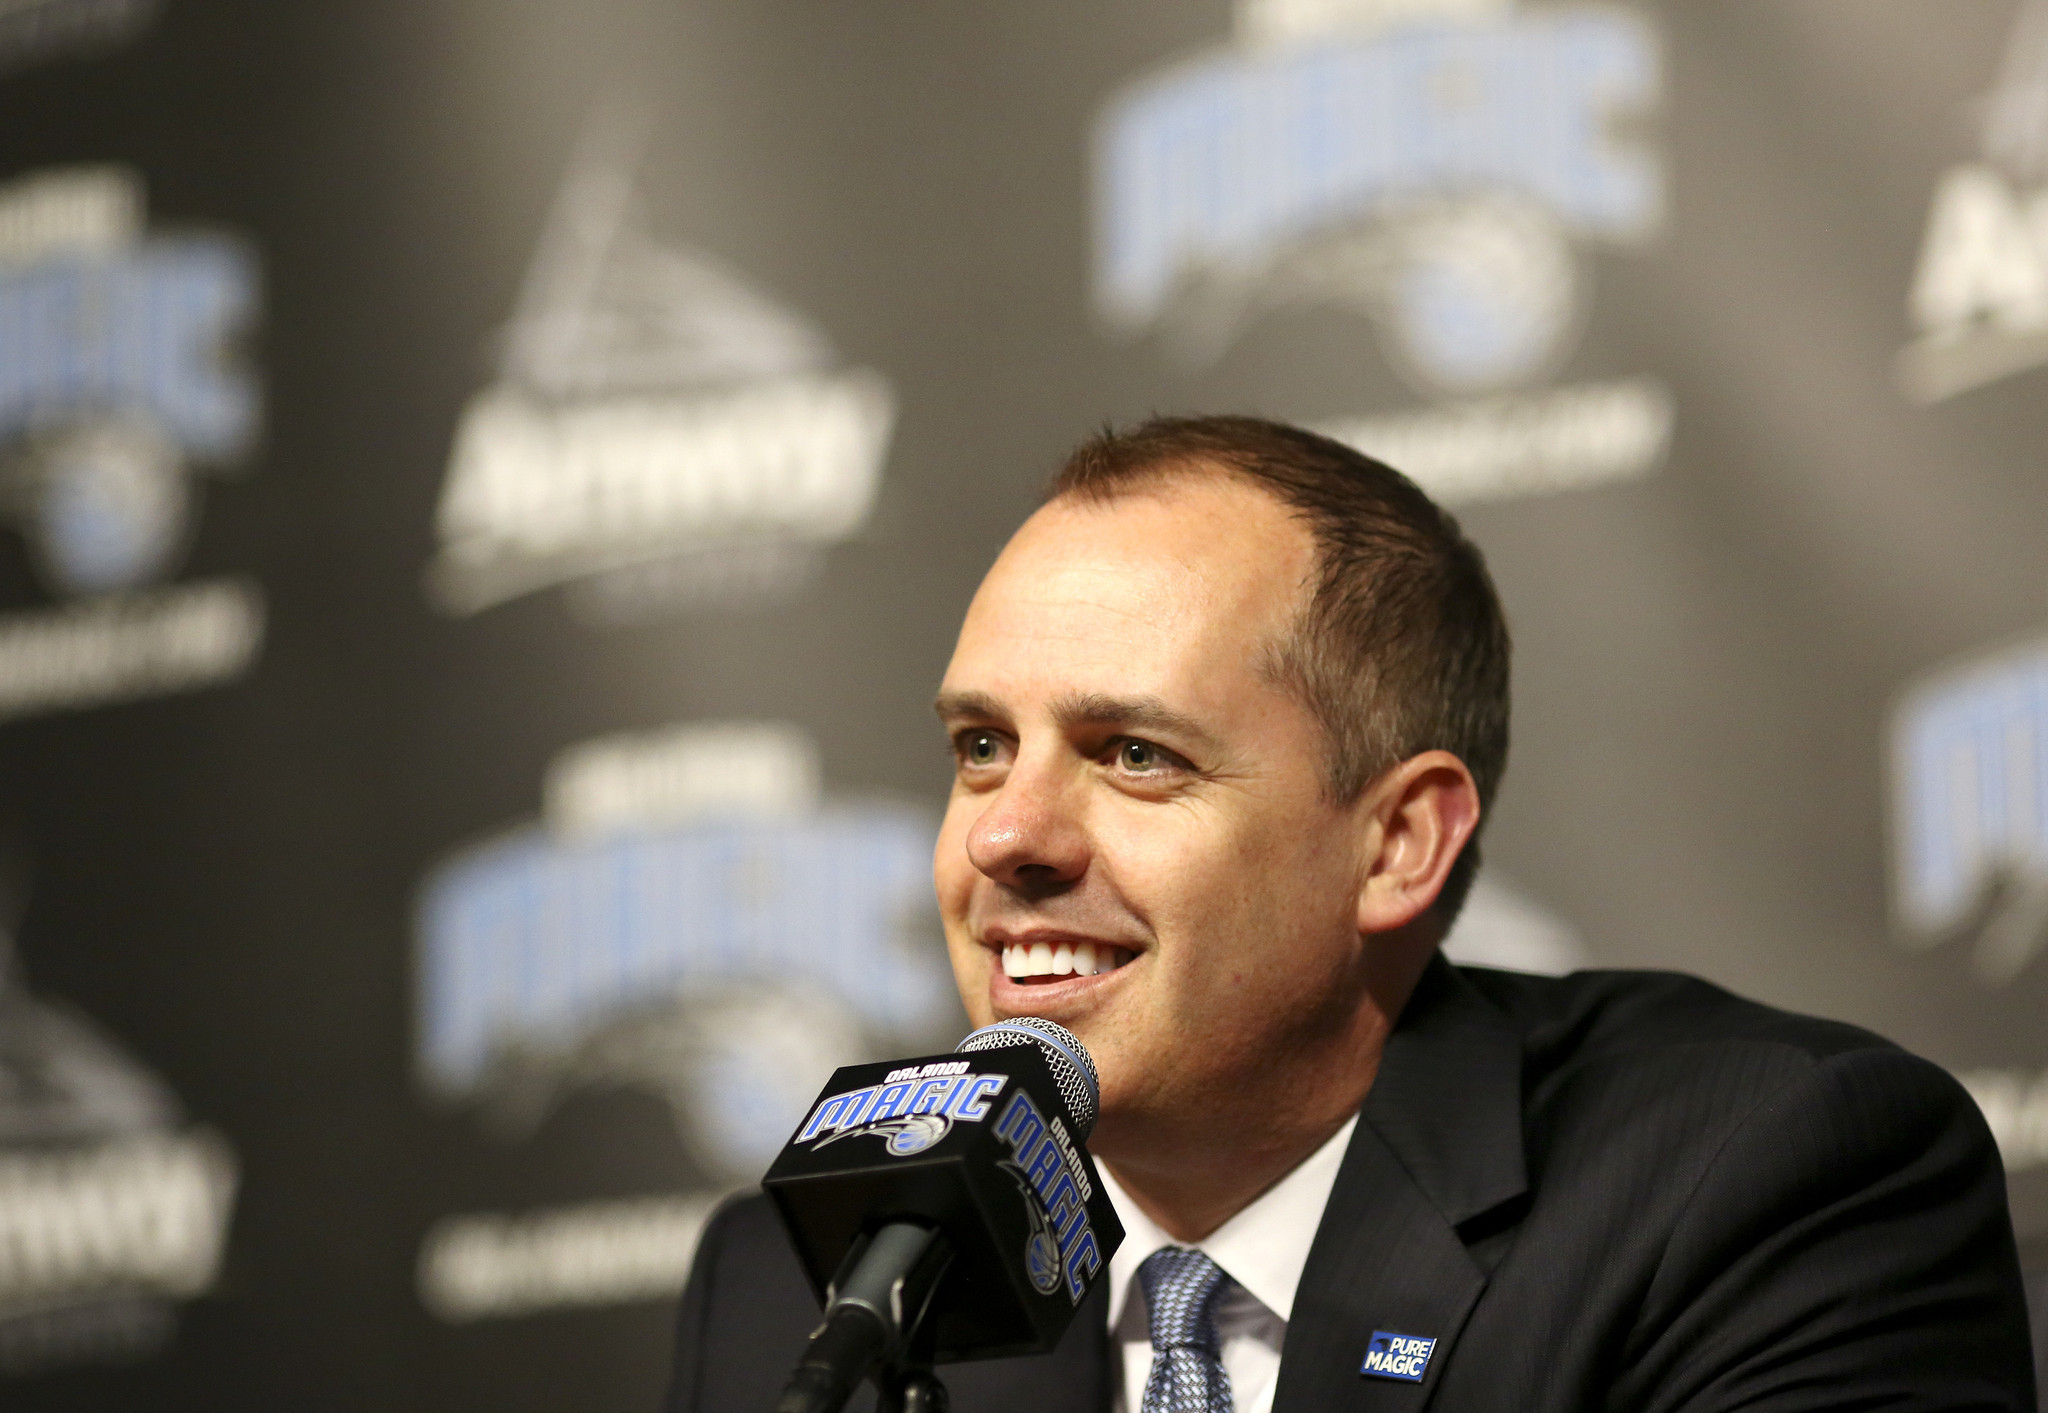 Os-orlando-magic-frank-vogel-0524-20160523